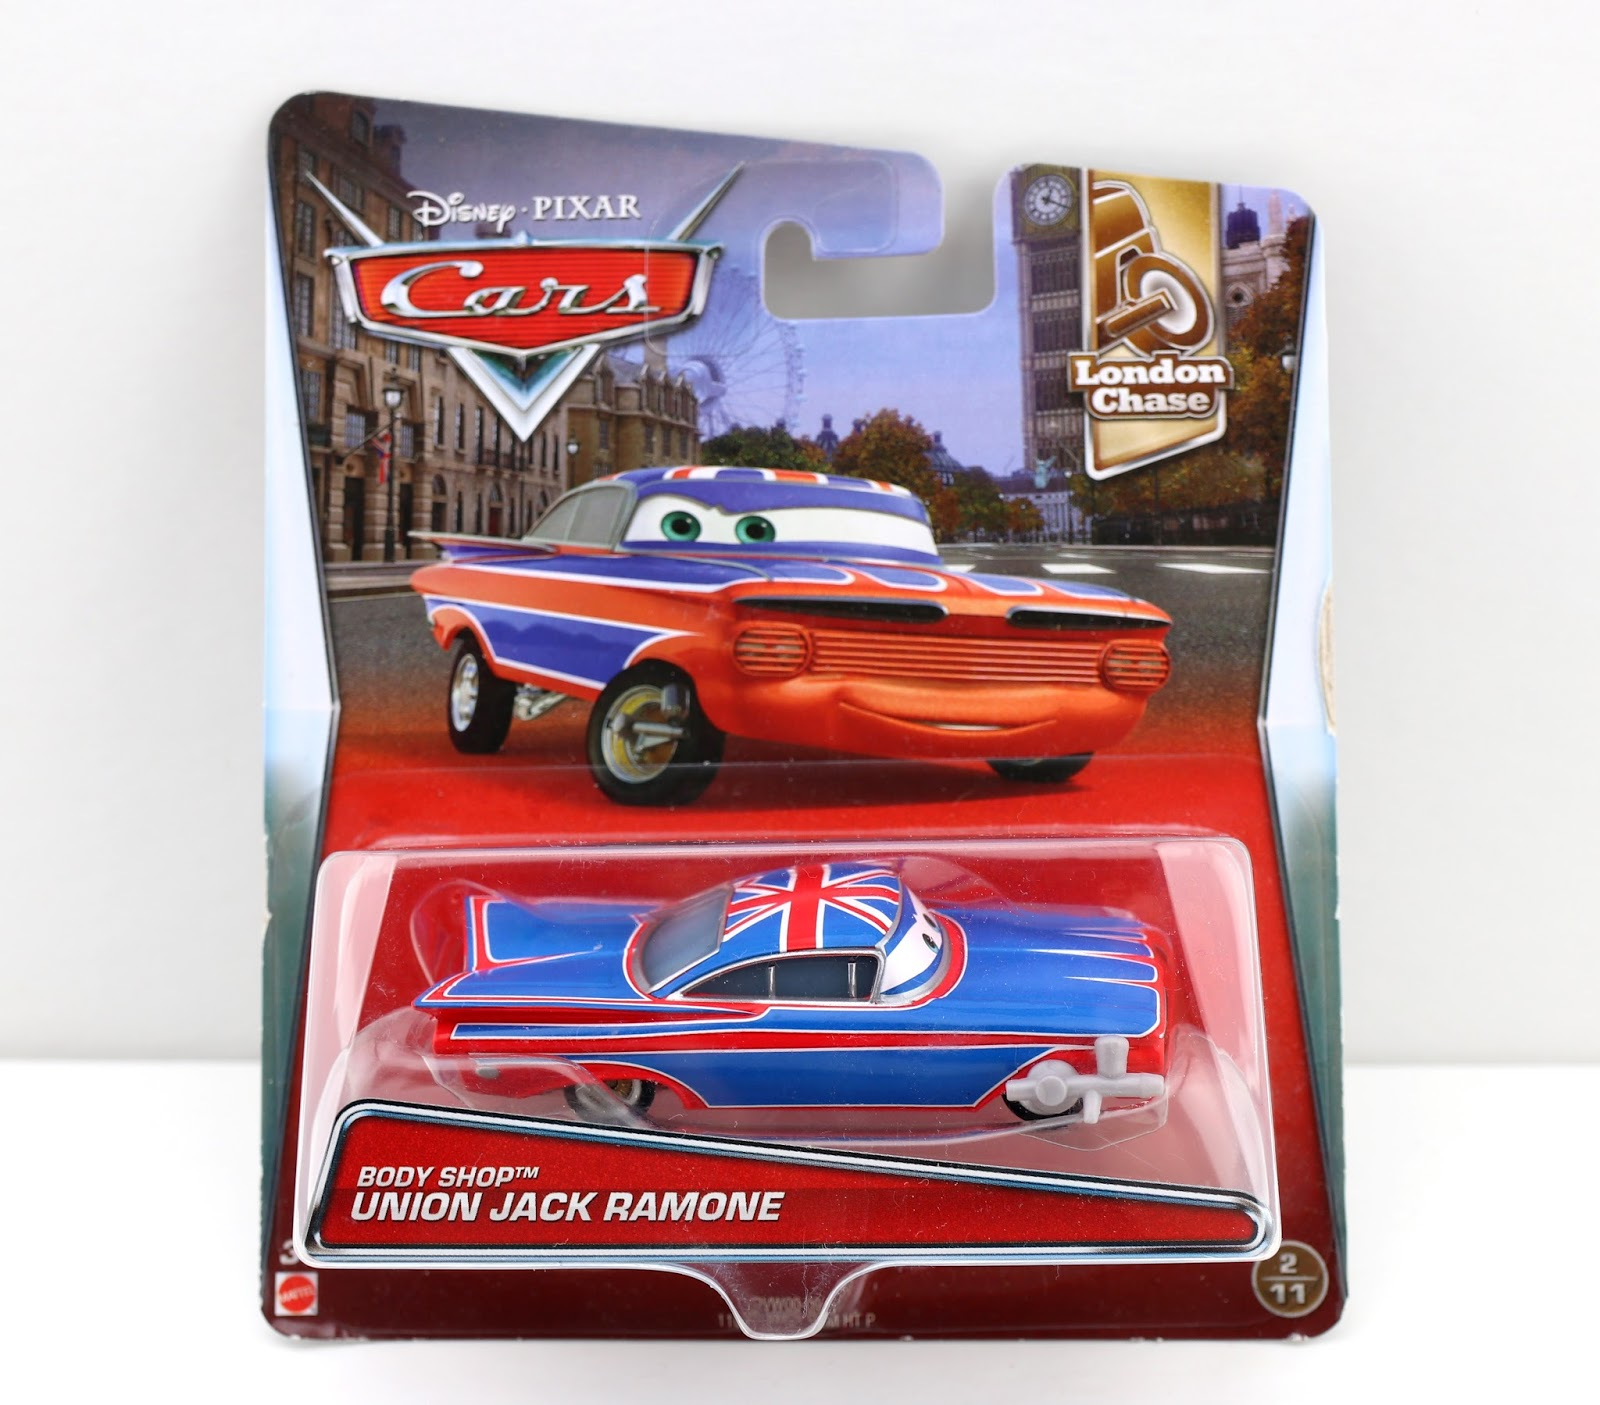 Cars 2 Body Shop Union Jack Ramone